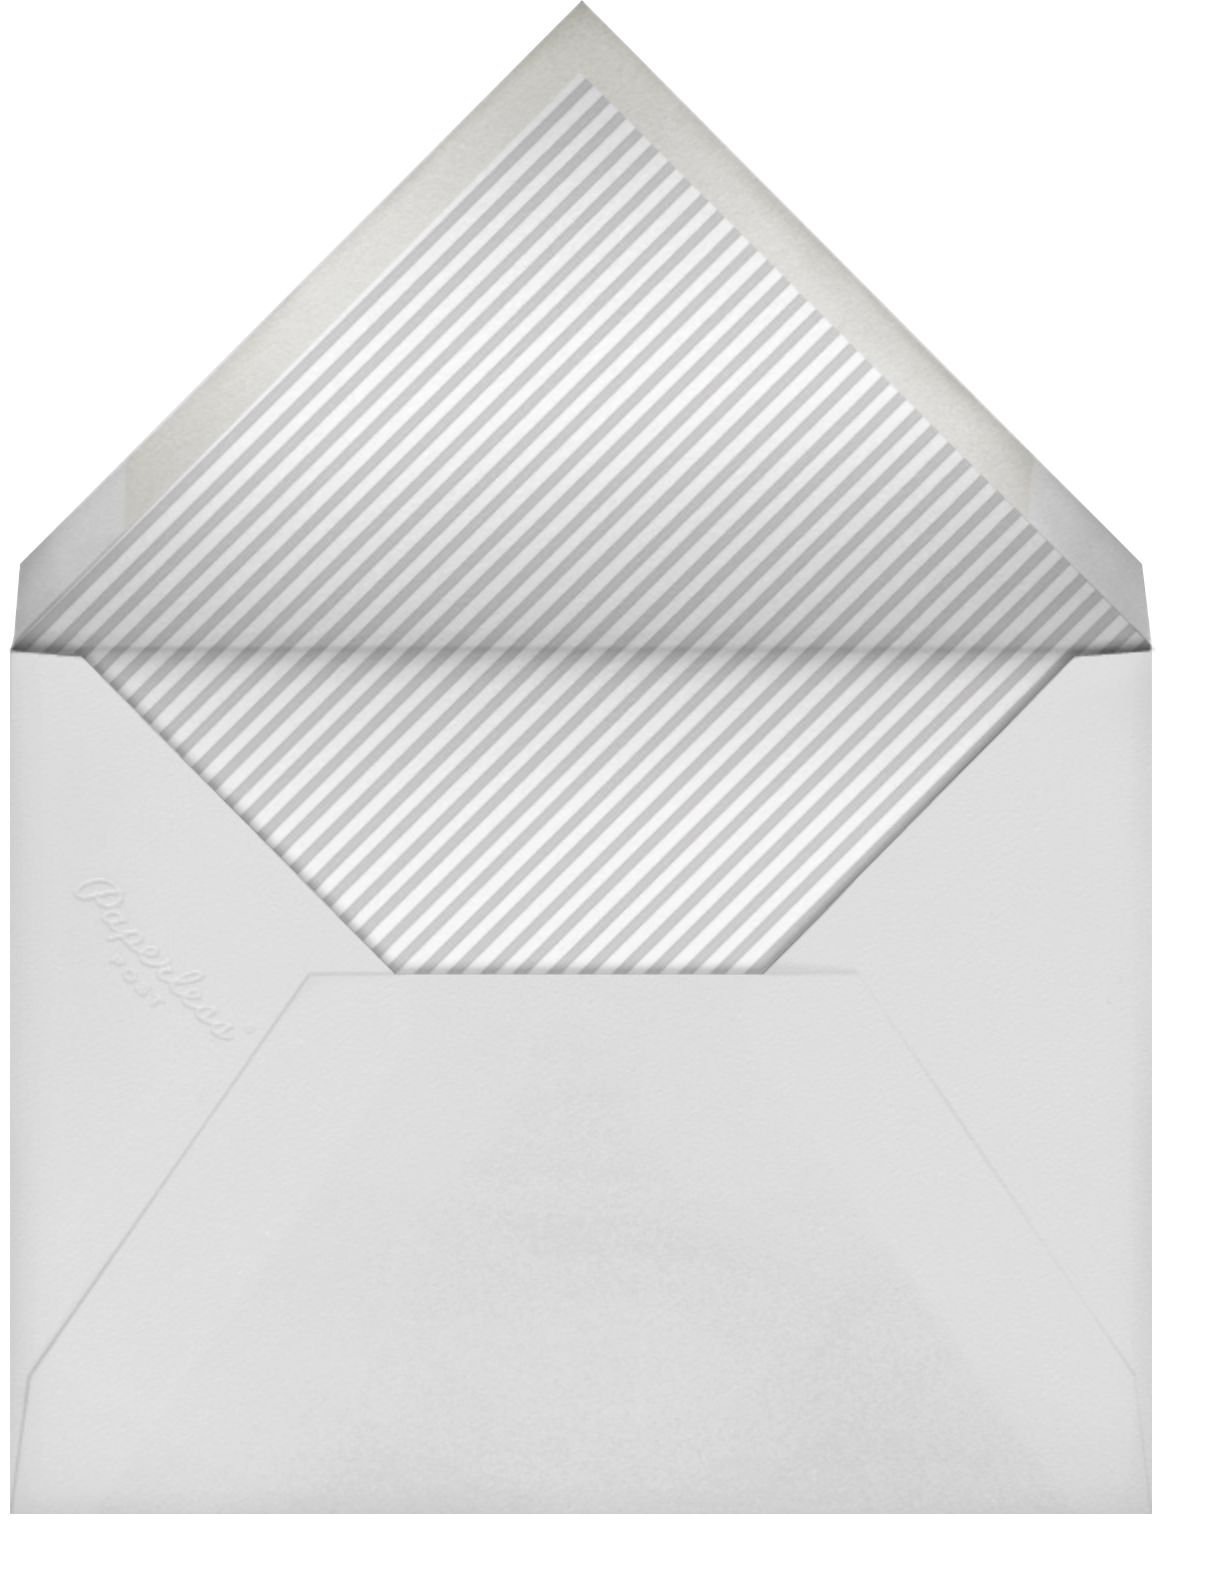 Two of a Kind - Paperless Post - Birth - envelope back